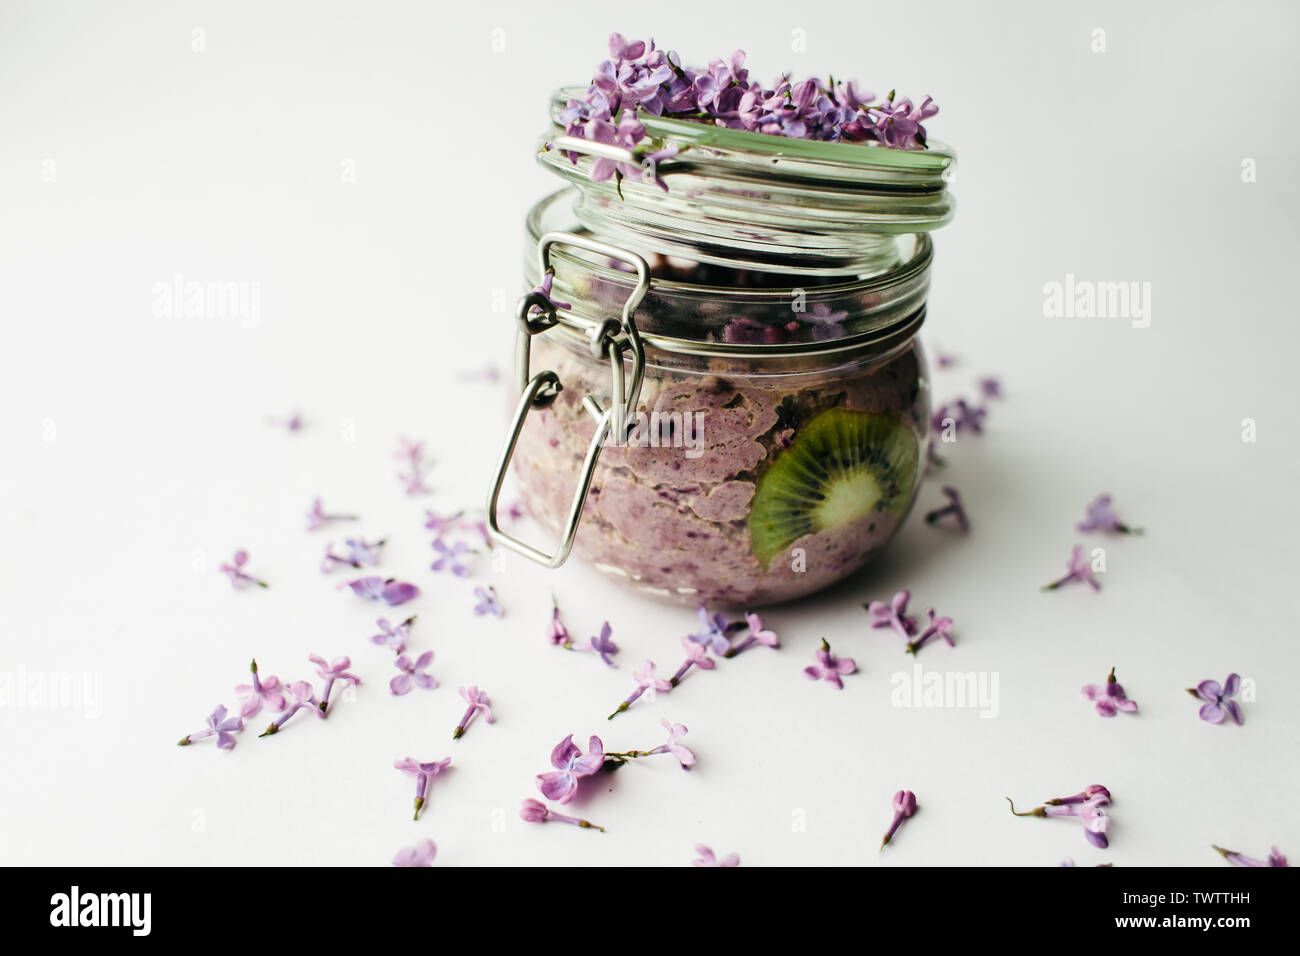 healthy smoothie breakfast in a glass jar with lilac flowers on white background - Stock Image